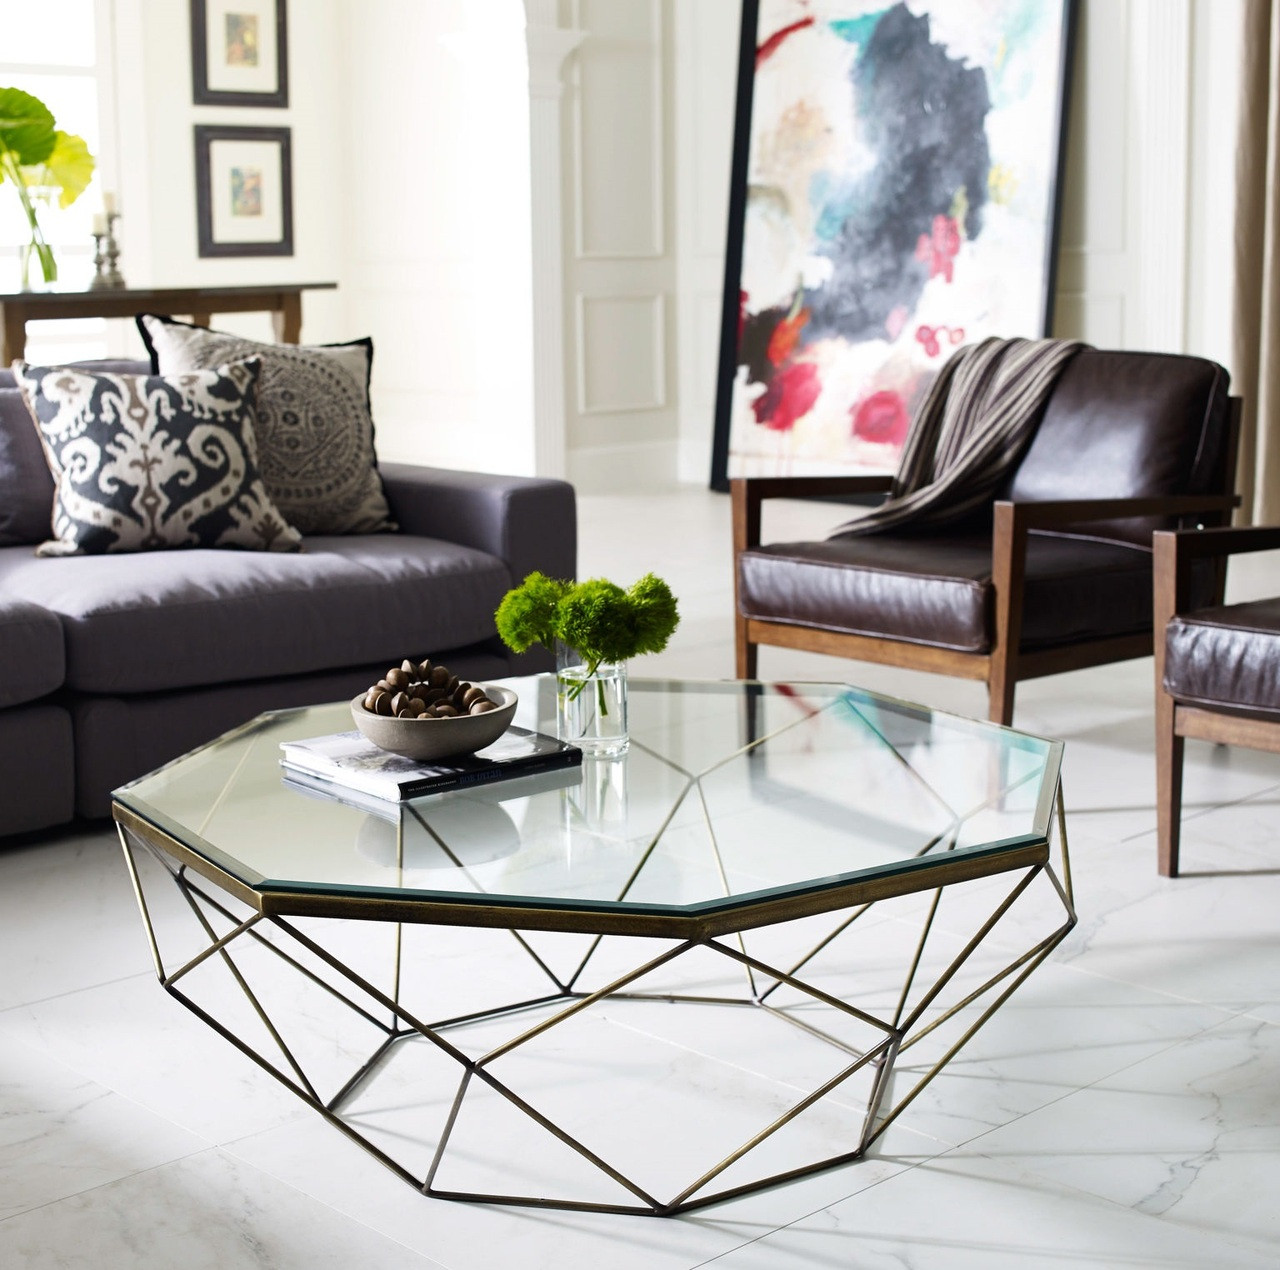 Geometric Antique Brass Coffee Table with Glass Top Zin Home